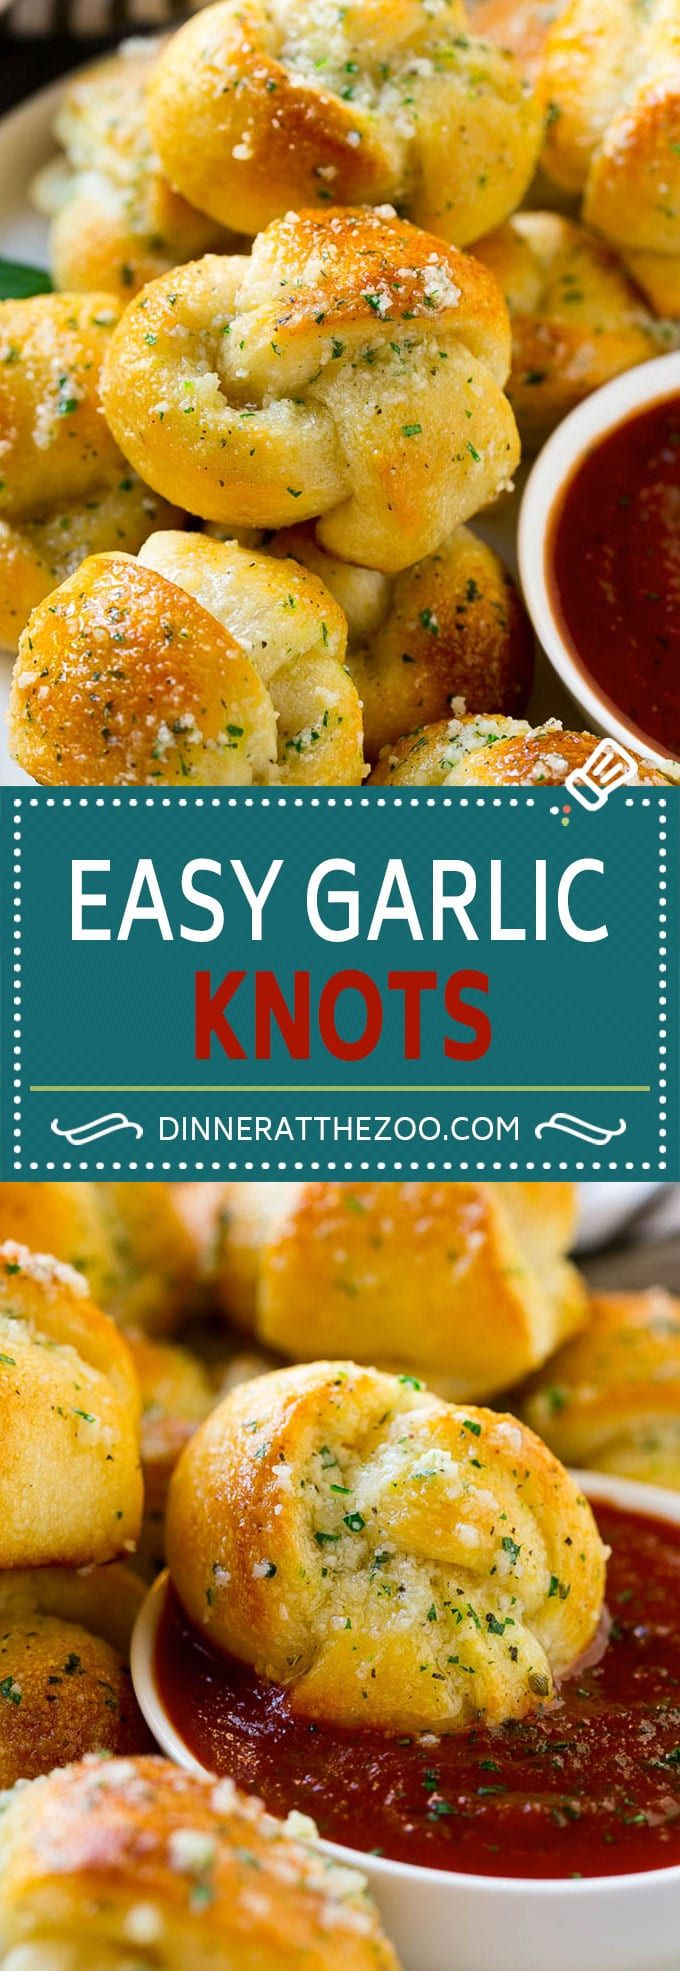 3774 best Okra images on Pinterest | Kitchens, Canning recipes and ...